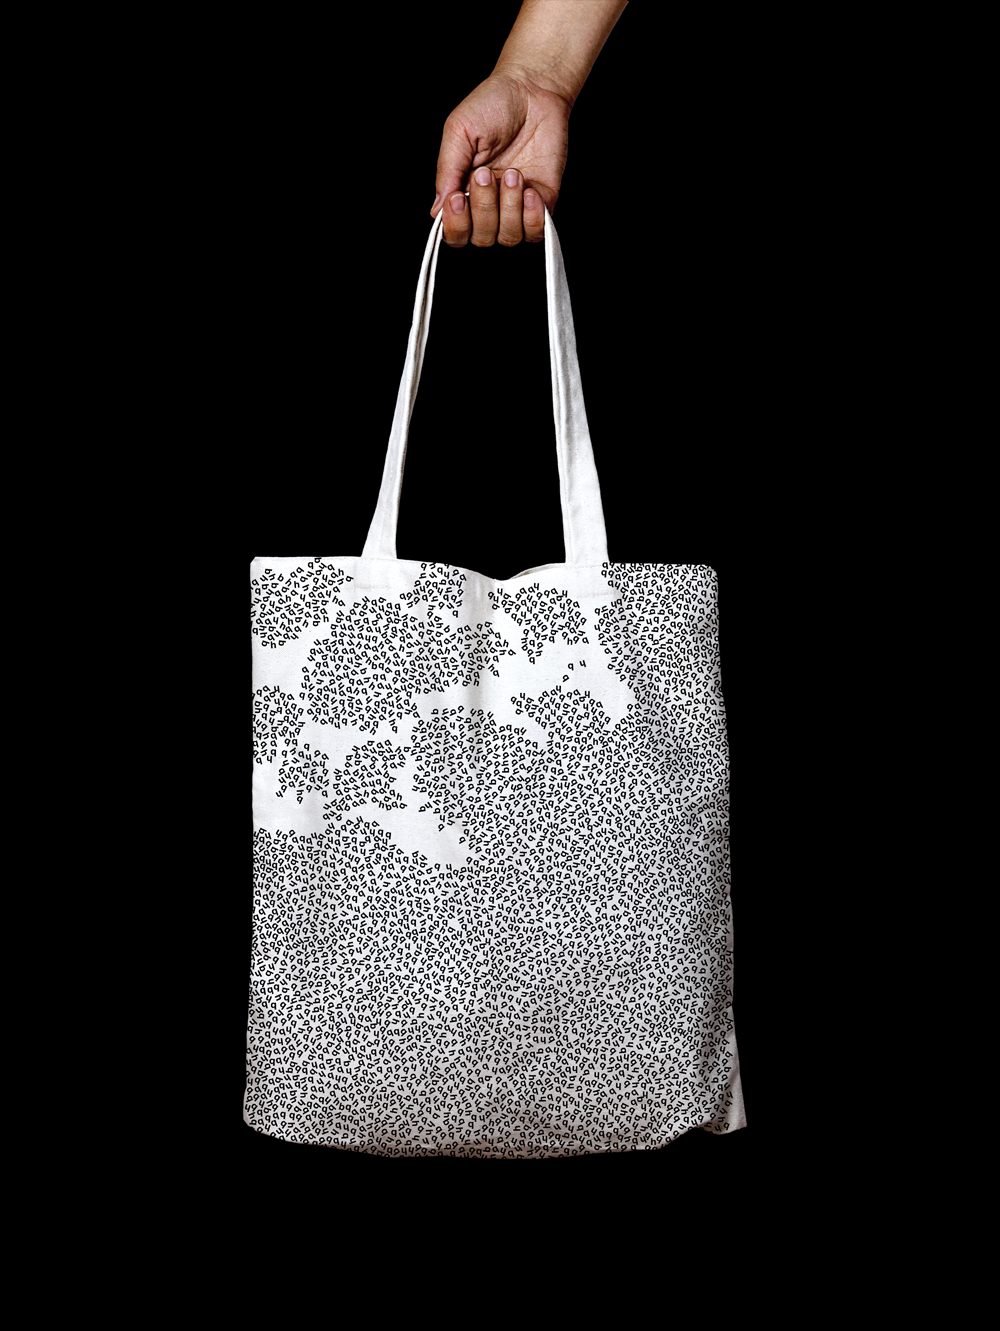 171008-BBH-Onboarding-Explorations-Patterns-Mockup-Totebag-01-01.png